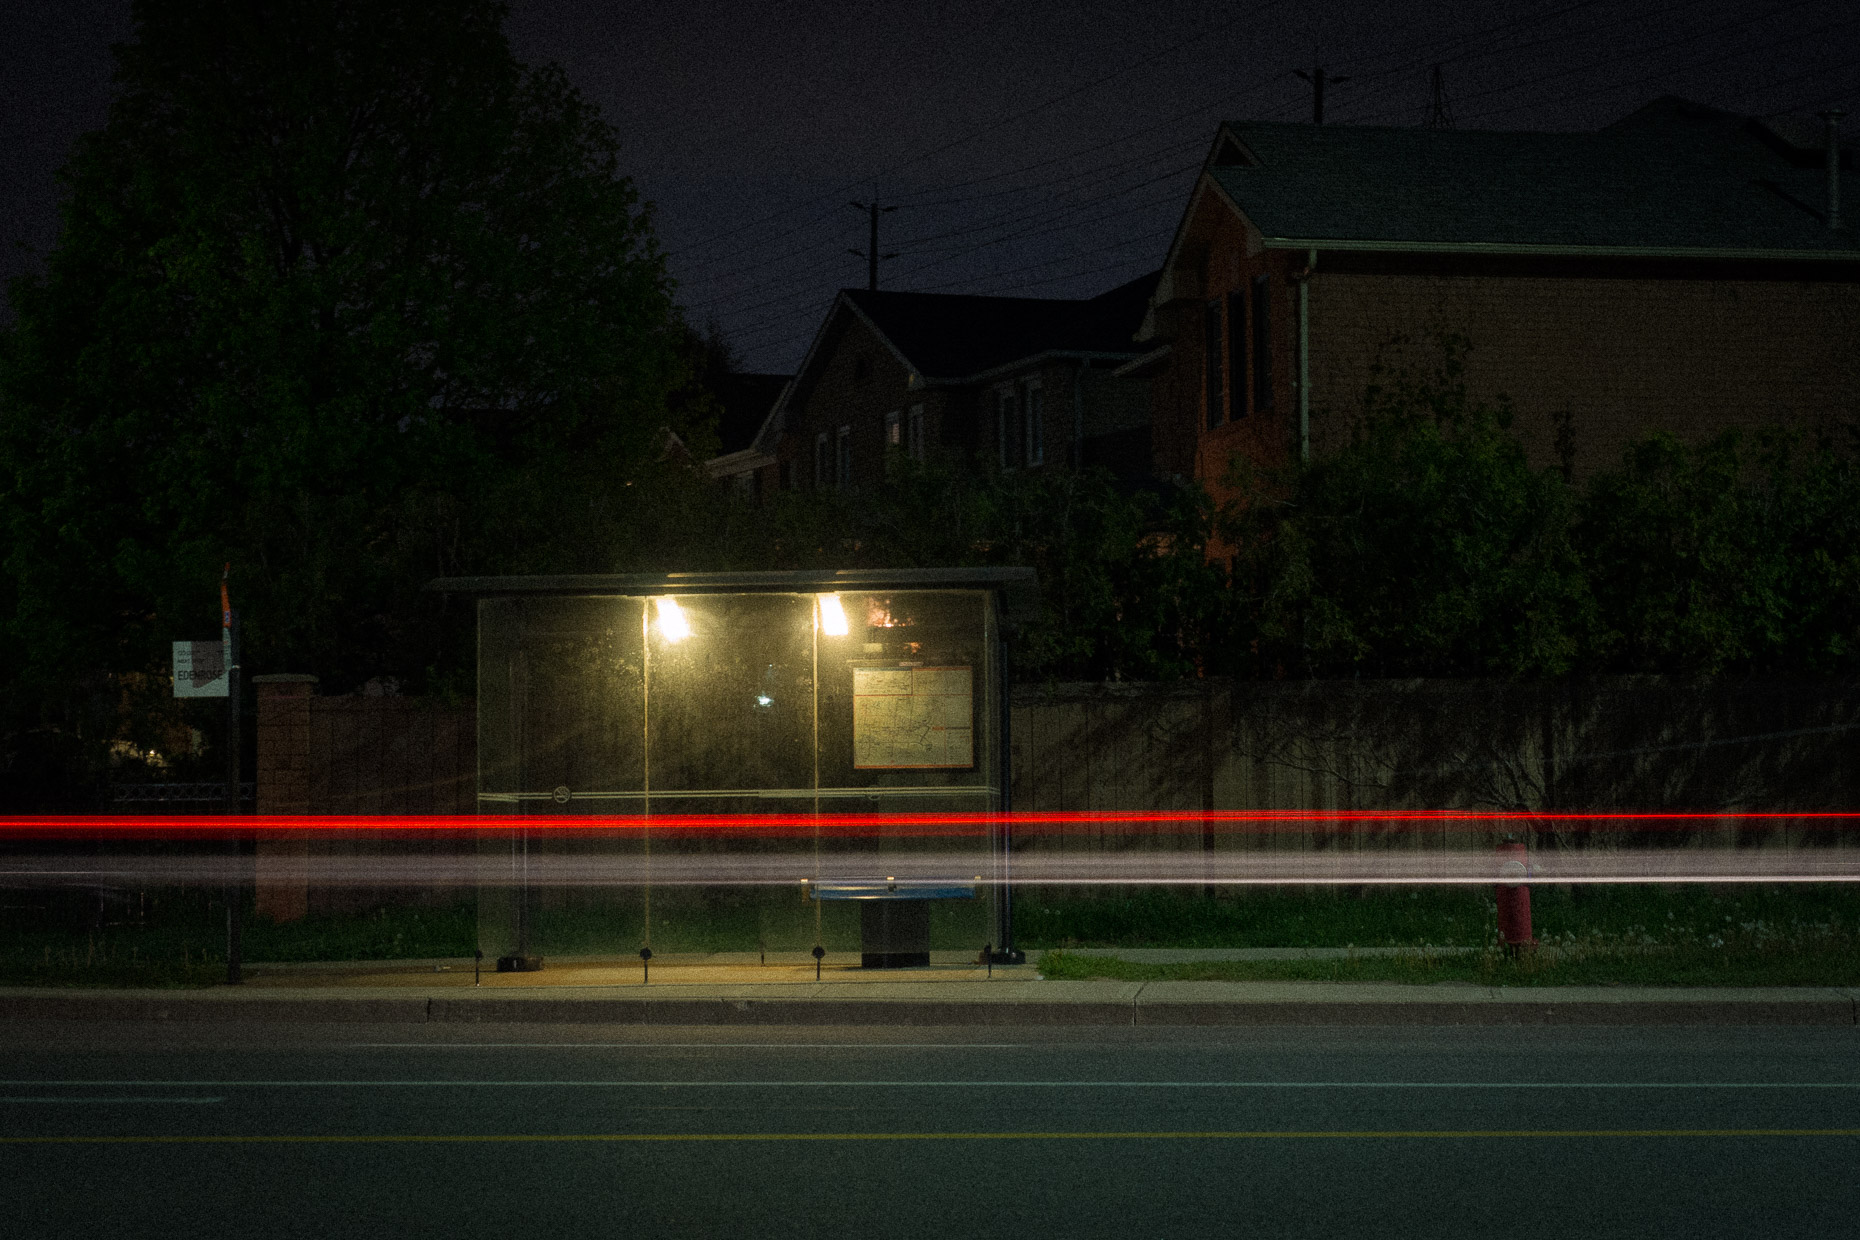 David_Coulson_Creatives13-busstop